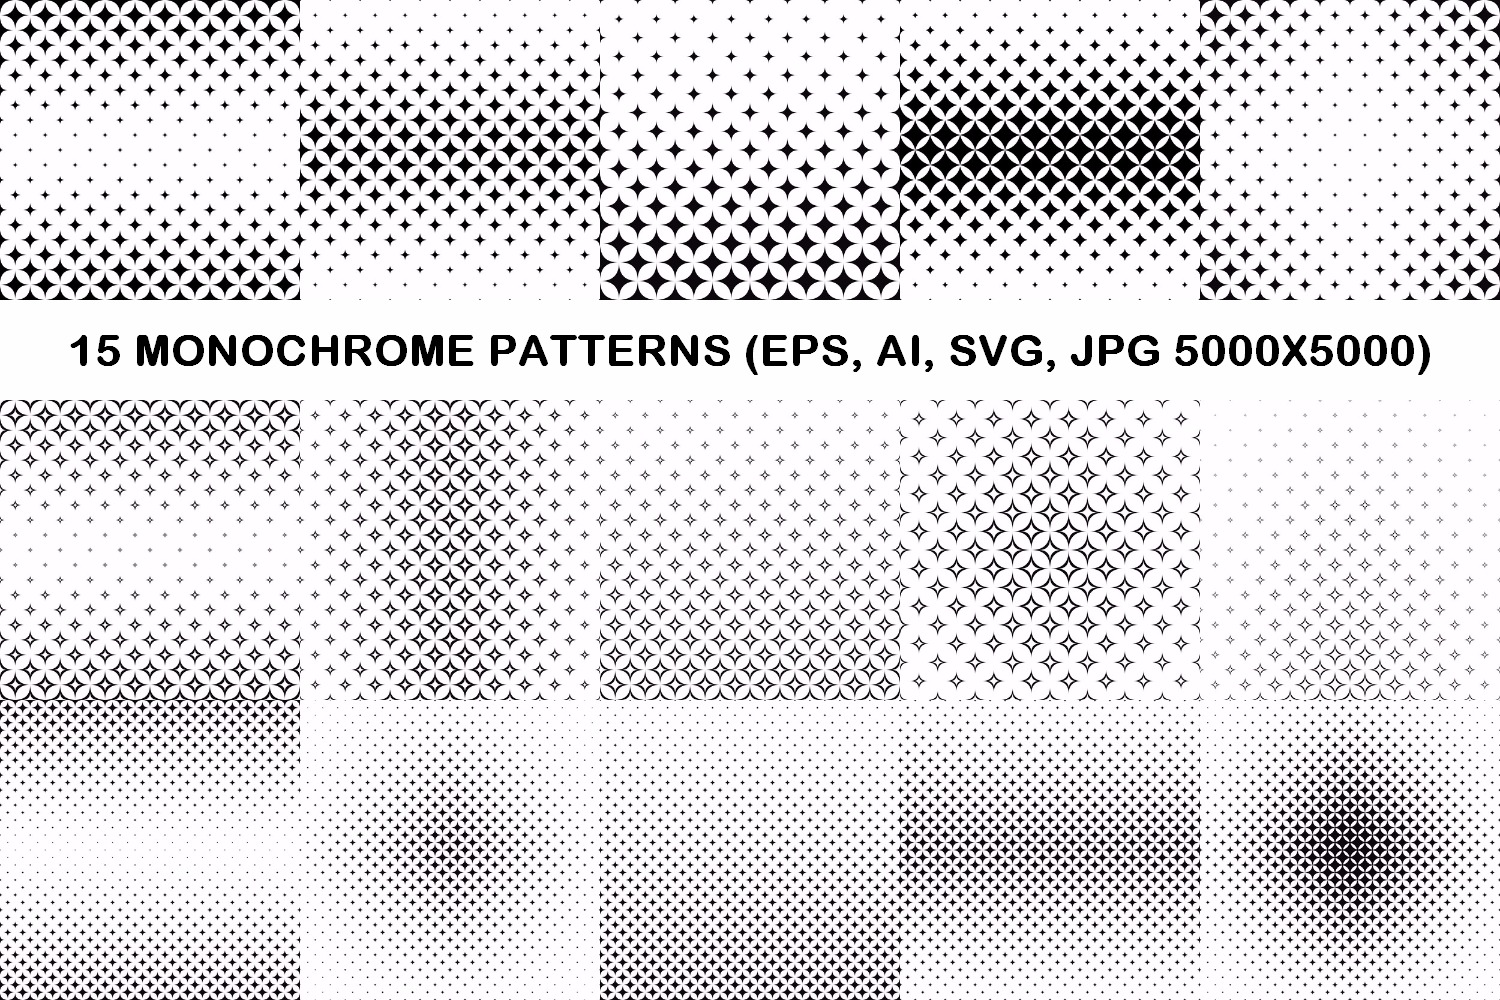 Pattern Vectors Photos and PSD files